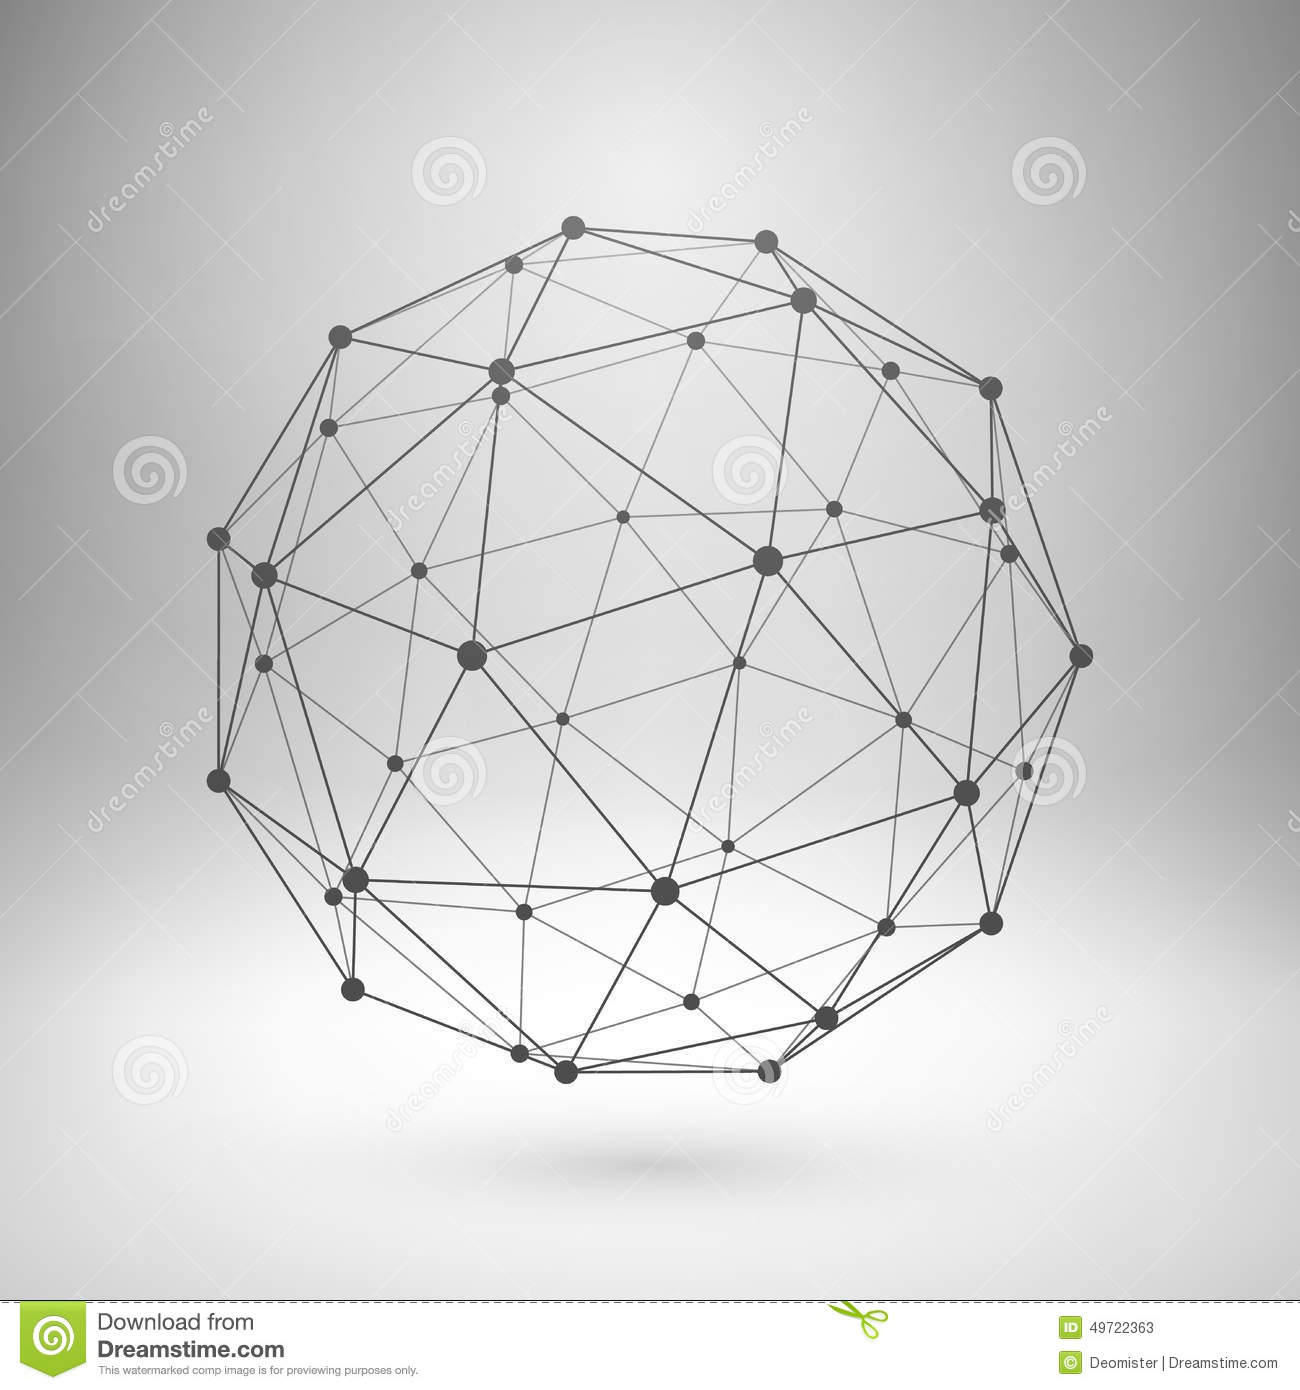 Polygon Wireframe Sphere Wire Center Regulator Rectifier Circuit Basiccircuit Diagram Seekic Stock Illustrations 43 880 Rh Dreamstime Com Globe Vector Model